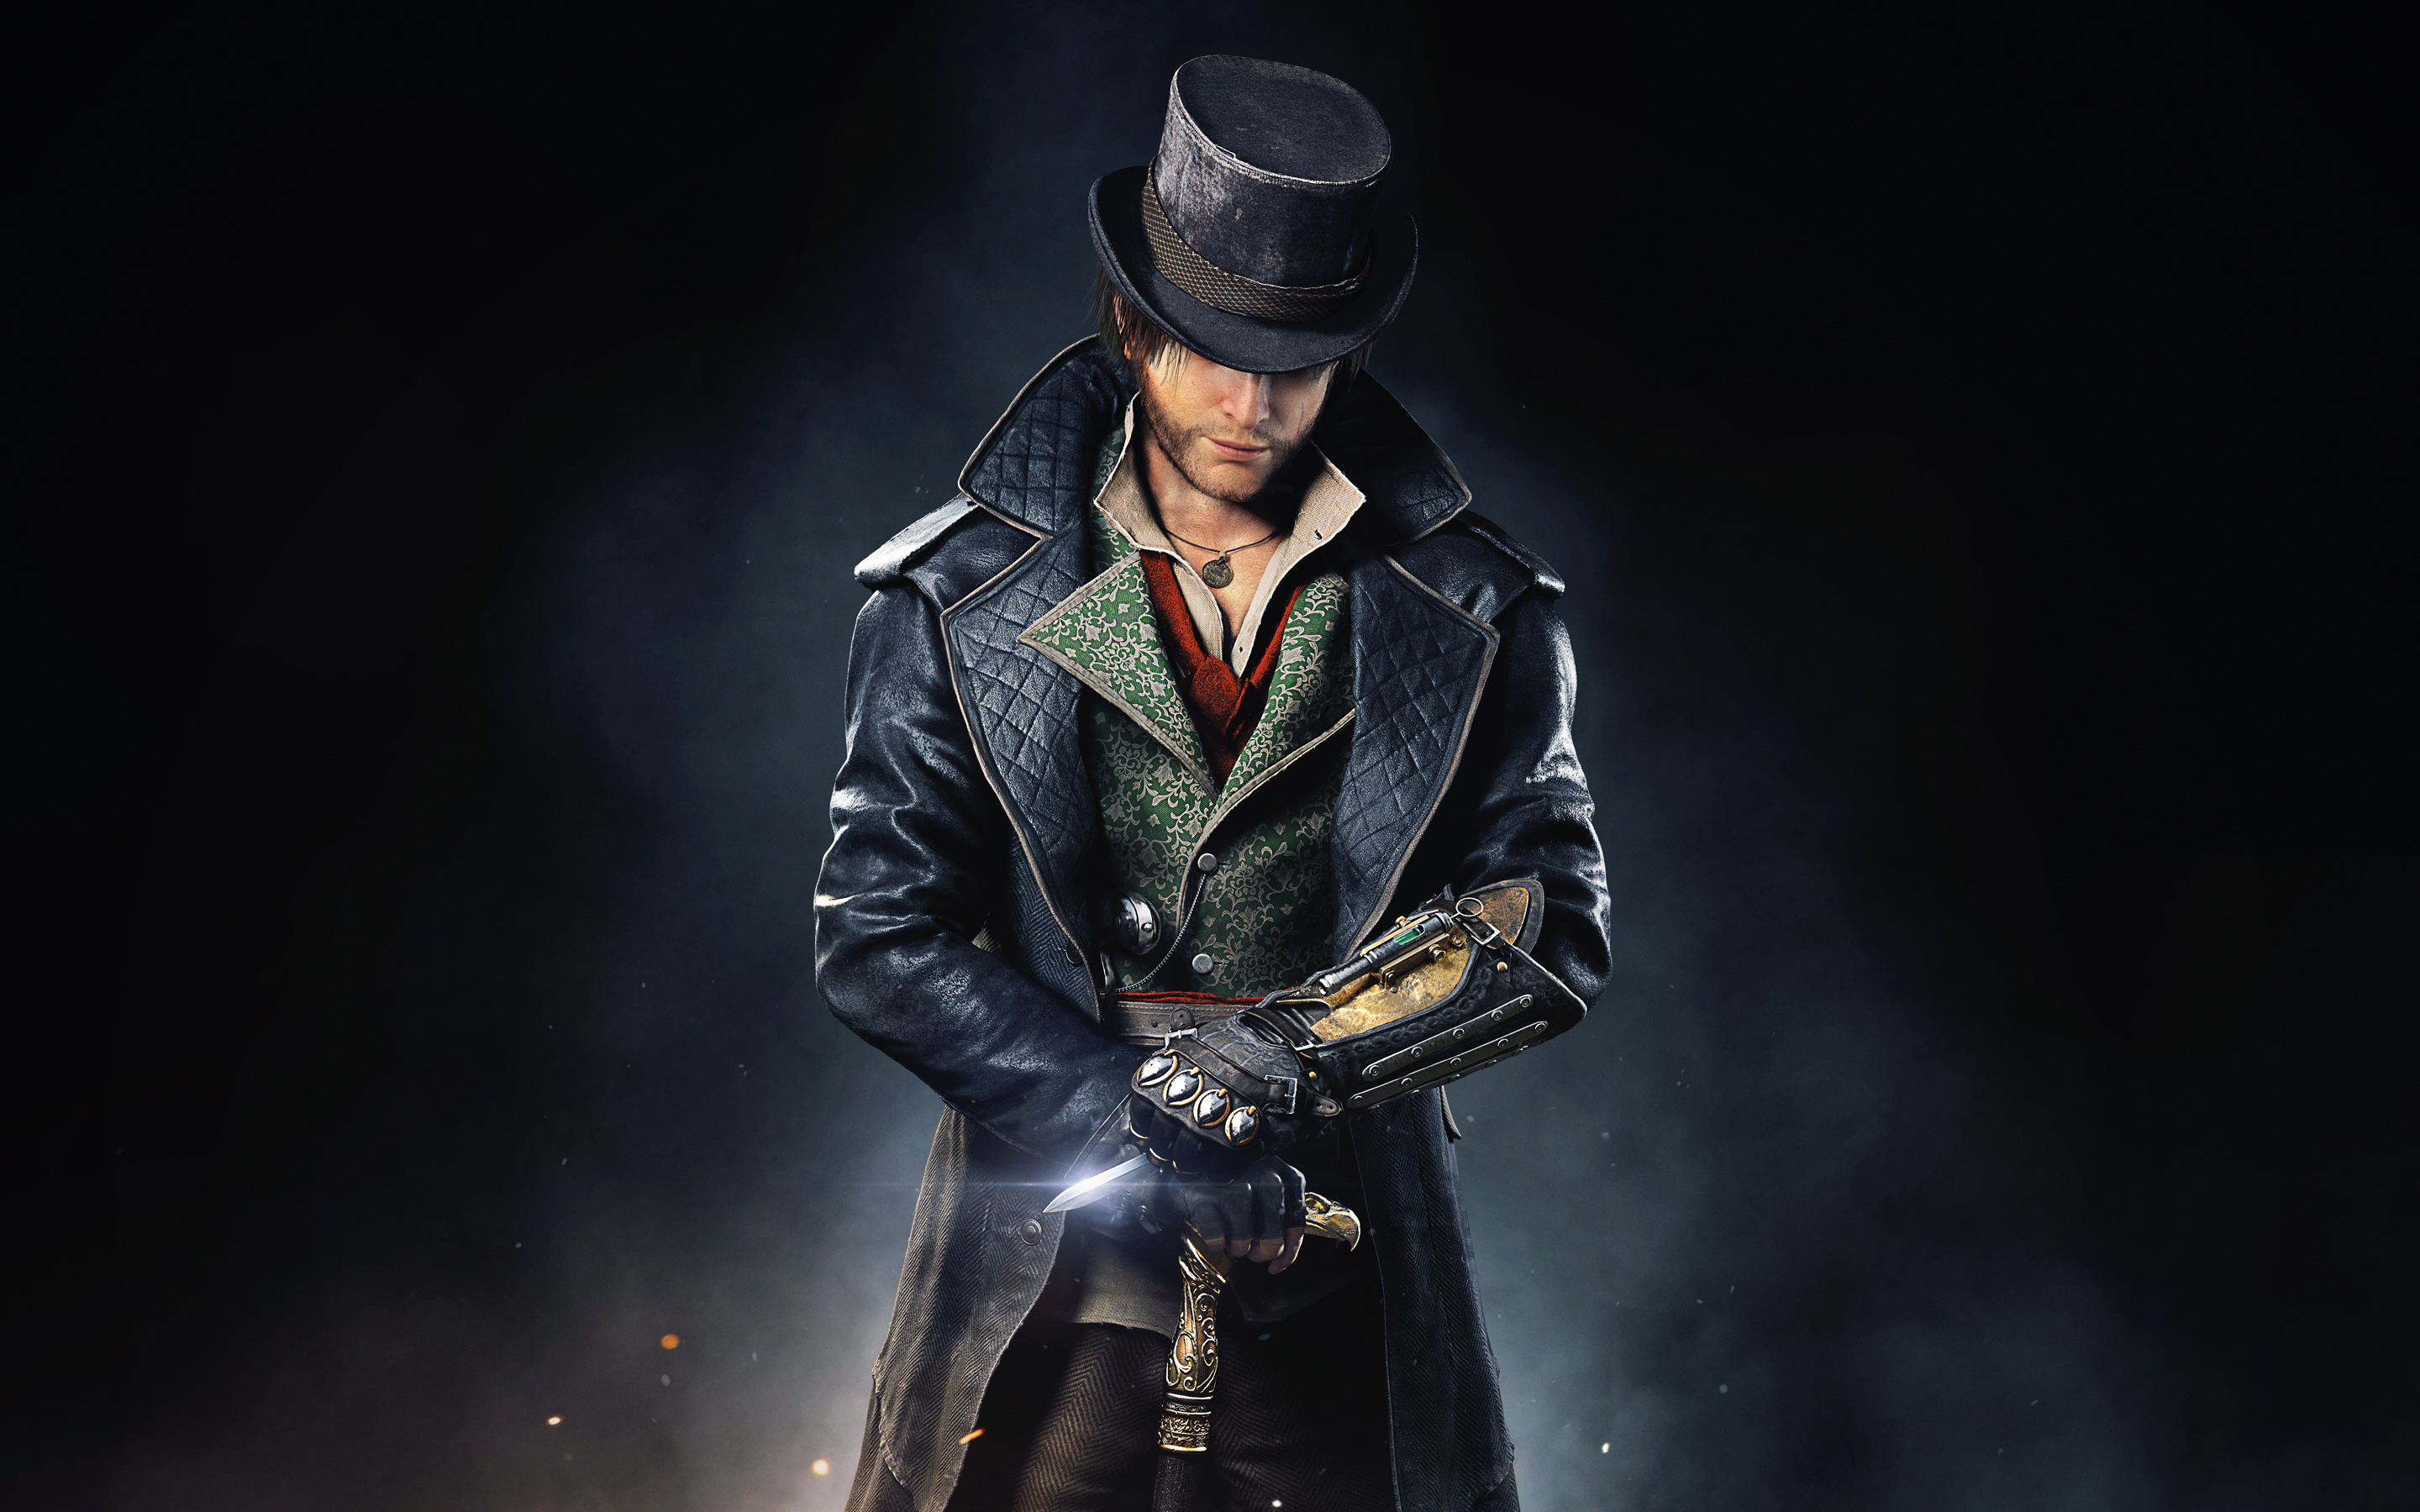 Free Download Jacob Frye Assassins Creed Syndicate Wallpapers Hd Wallpapers 2880x1800 For Your Desktop Mobile Tablet Explore 70 Assassins Creed Hd Wallpaper Assassin S Creed Wallpaper Hd 1080p Assassin S Creed